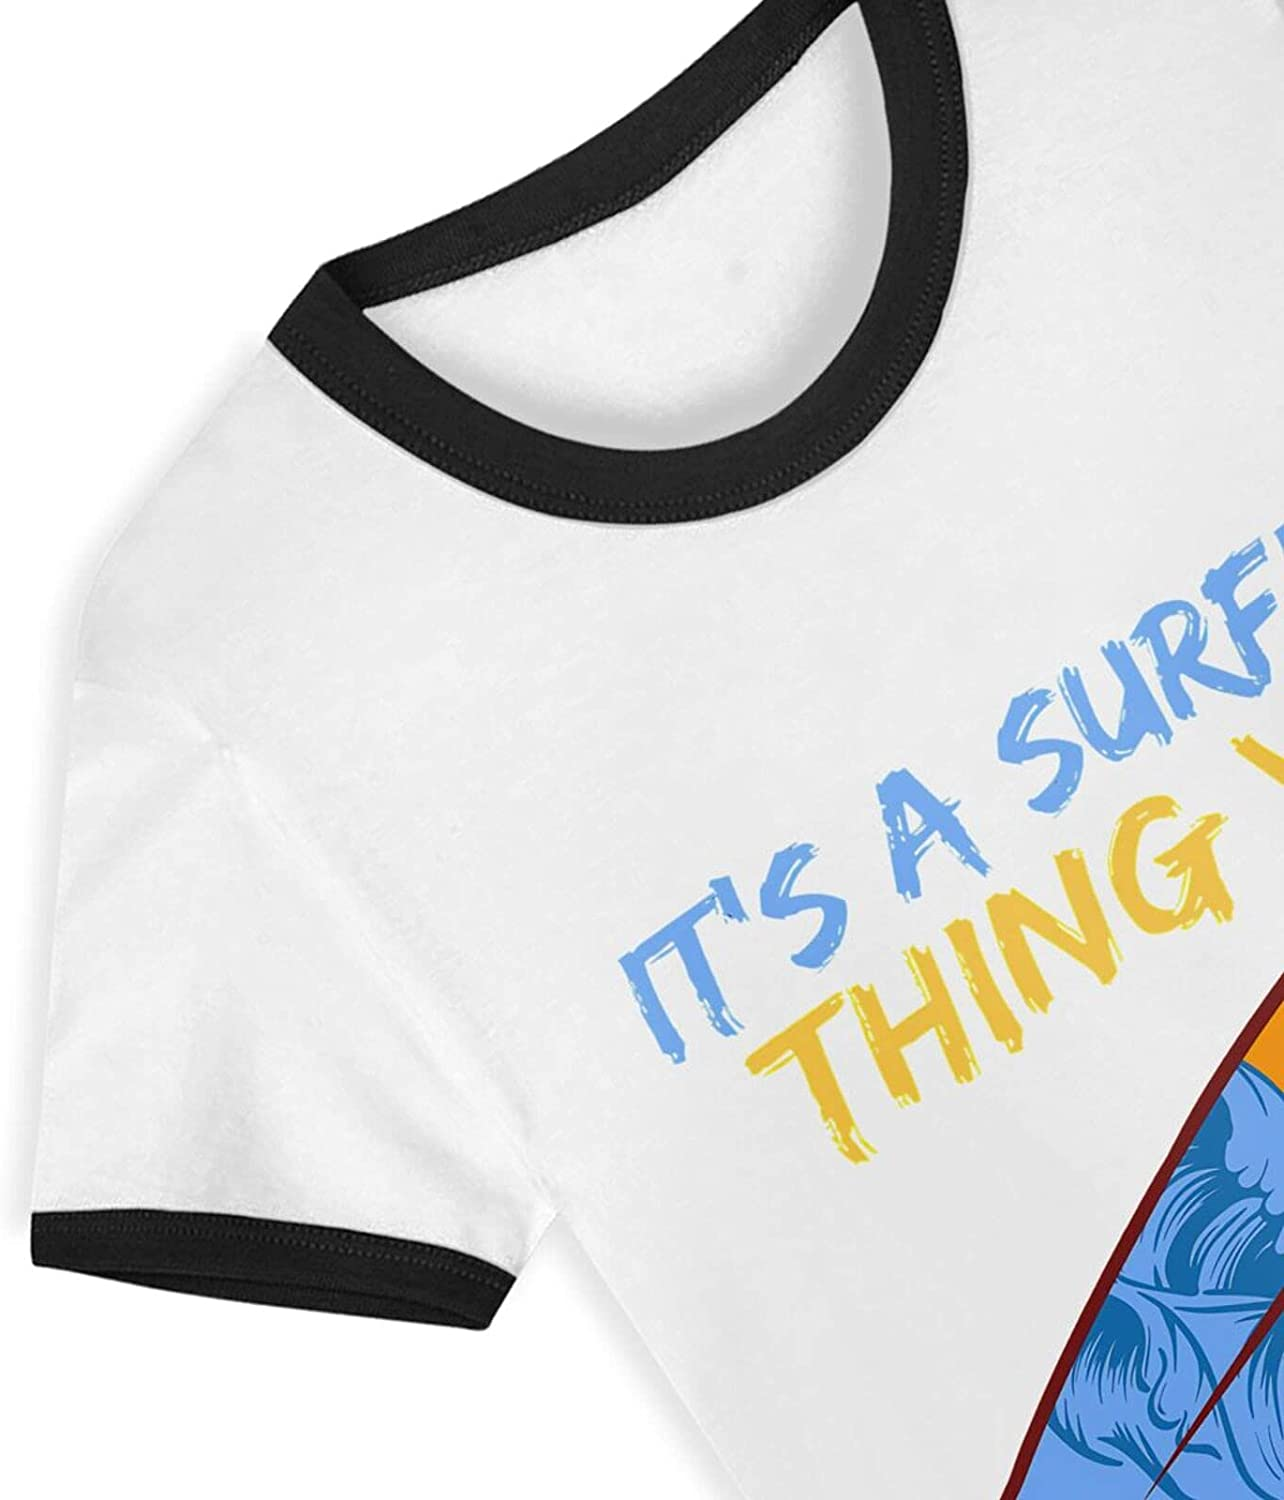 Its A Surfing Thing You Wouldnt Understand T-Shirts Novelty for Youth Tees with Cool Designs